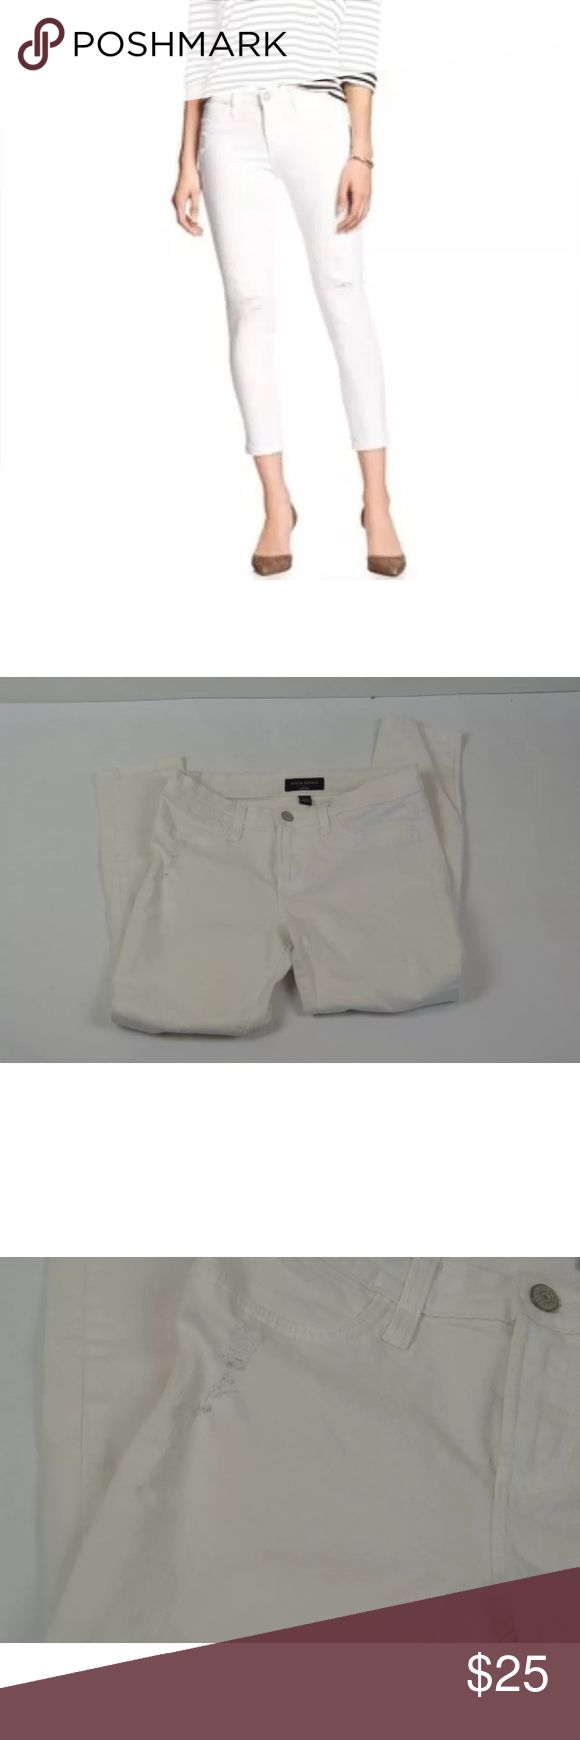 """Banana Republic Distressed Legging Jeans Cropped Banana Republic White Distressed Legging Jeans Cropped Size 8  Excellent pre-owned condition  92% cotton, 6% poly and 2% spandex  8"""" rise  15"""" across the waist  25"""" inseam Distressed Legging Jeans Cropped Size 8  Excellent pre-owned condition  92% cotton, 6% poly and 2% spandex  8"""" rise  15"""" across the waist  25"""" inseam Banana Republic Jeans Ankle & Cropped"""